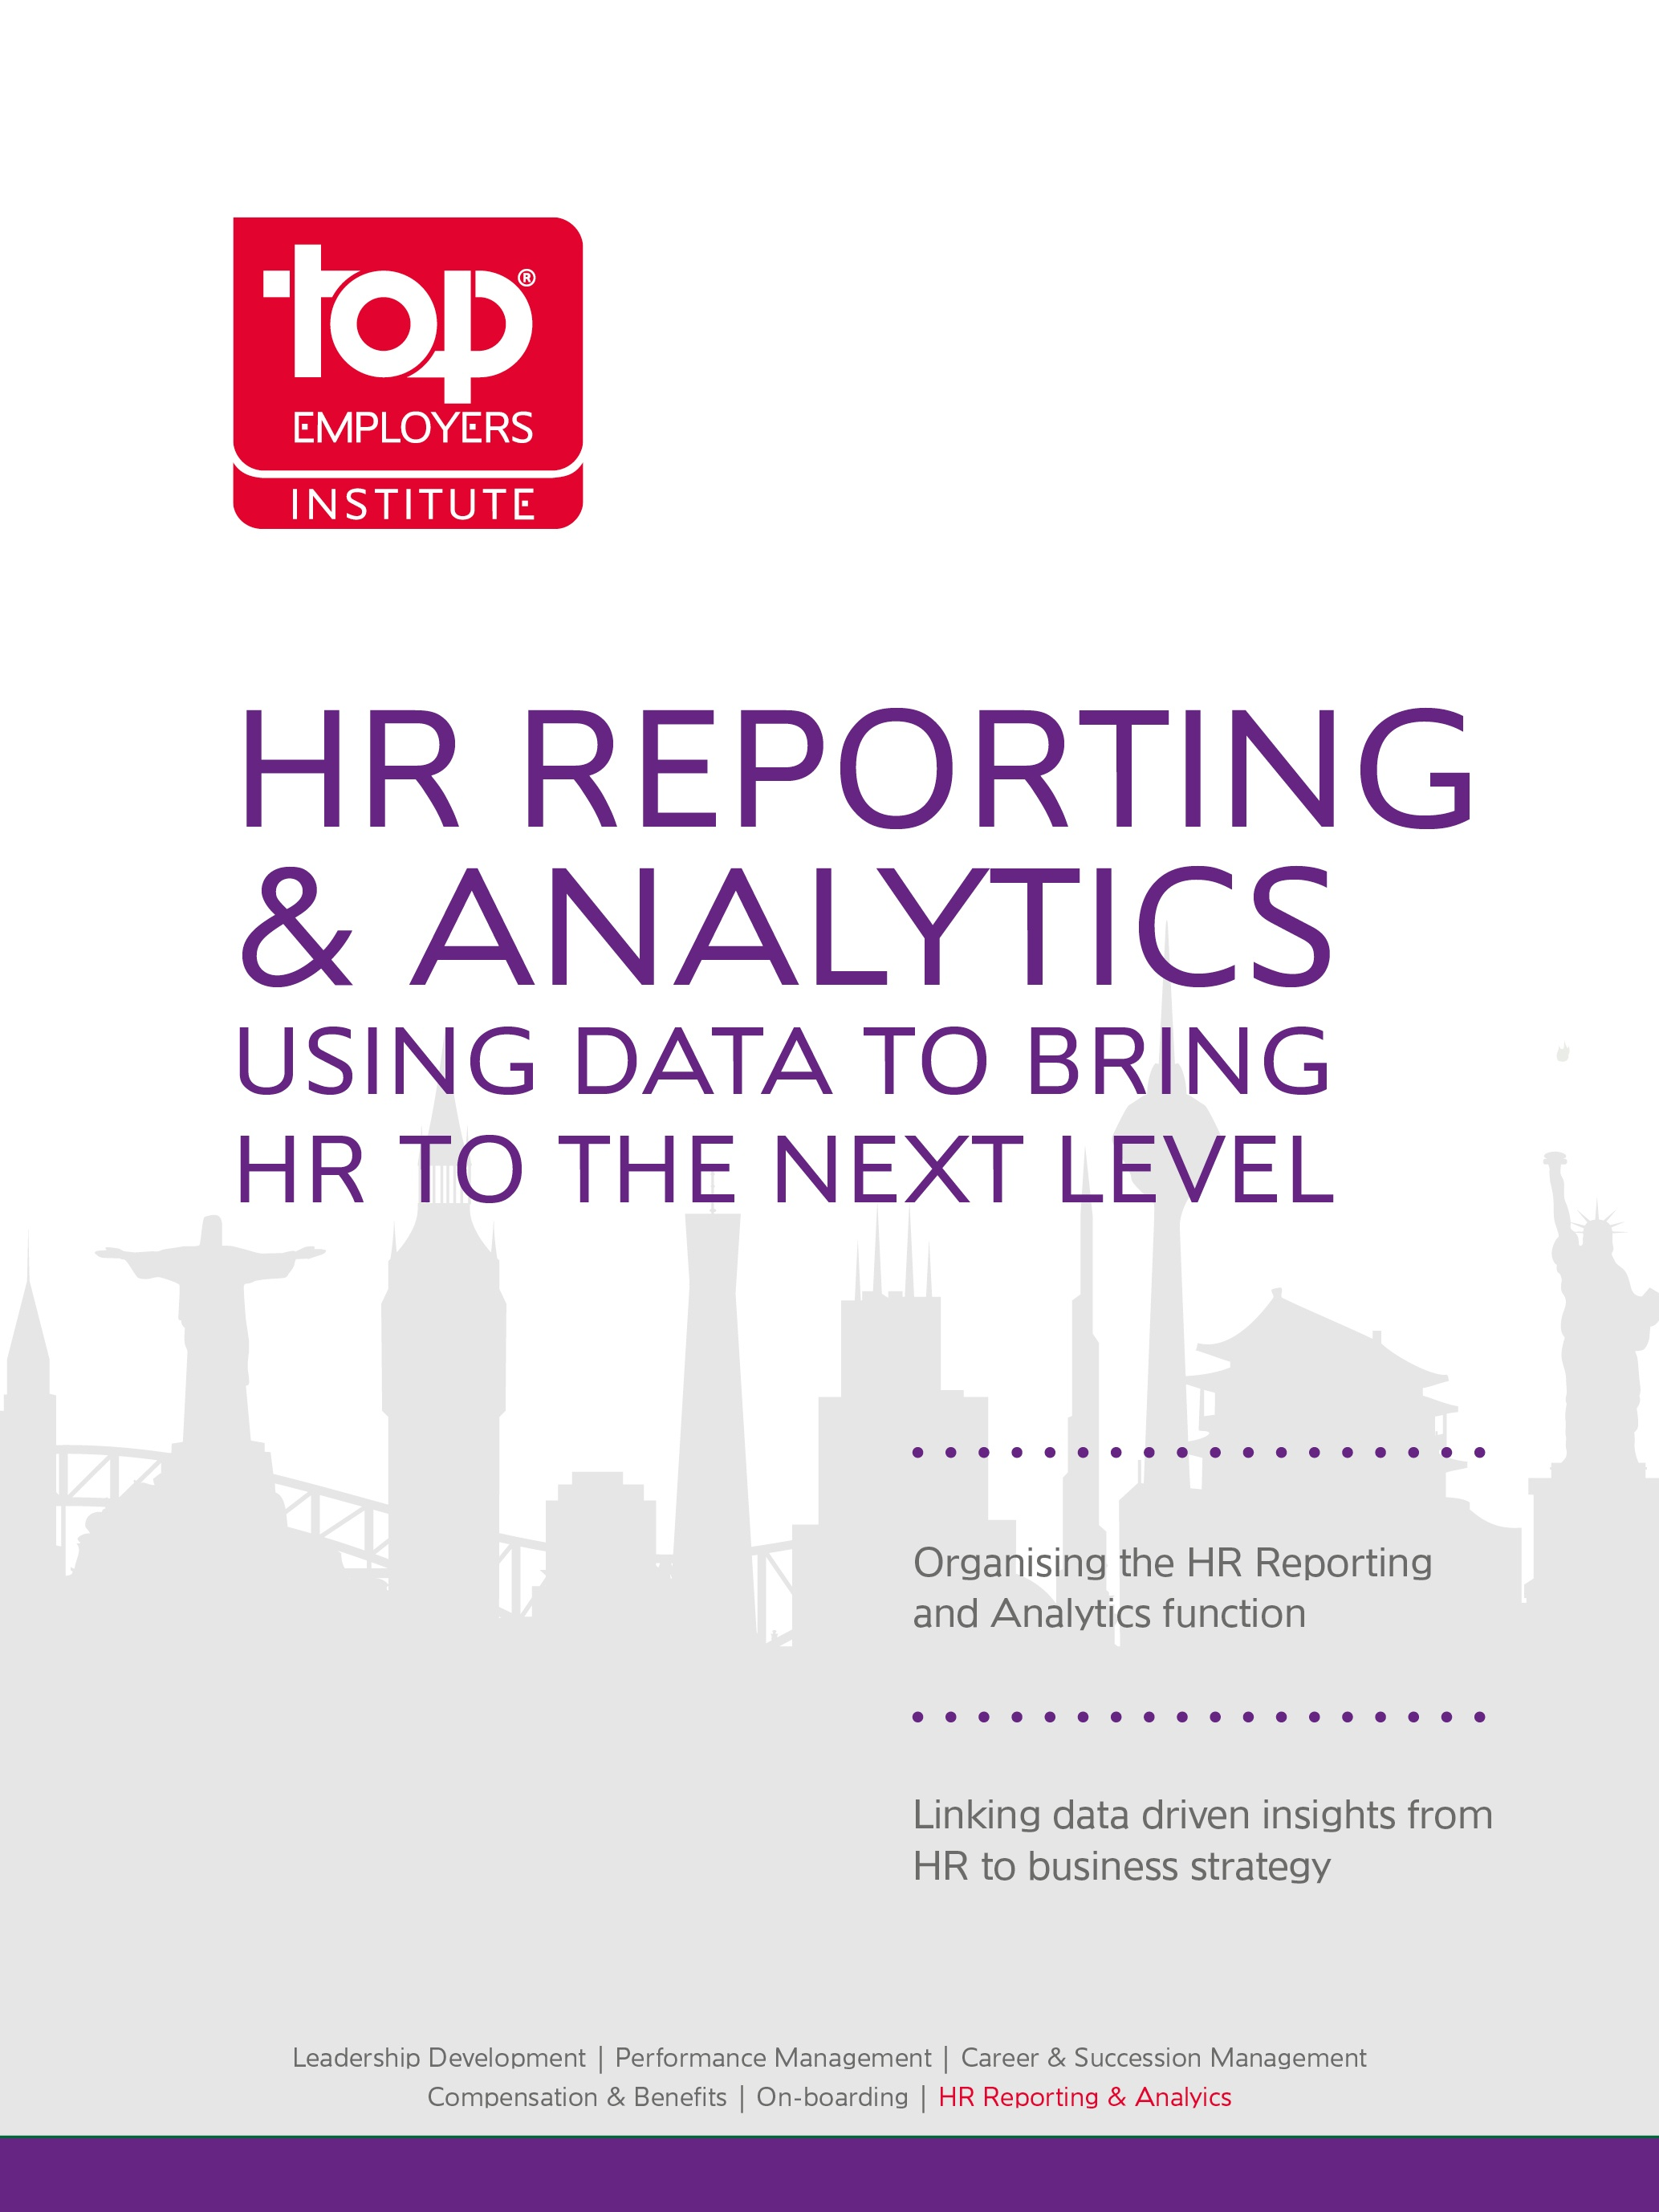 TE_RAPPORT_HR_Reporting__Analyics_16_COVER_final.jpg